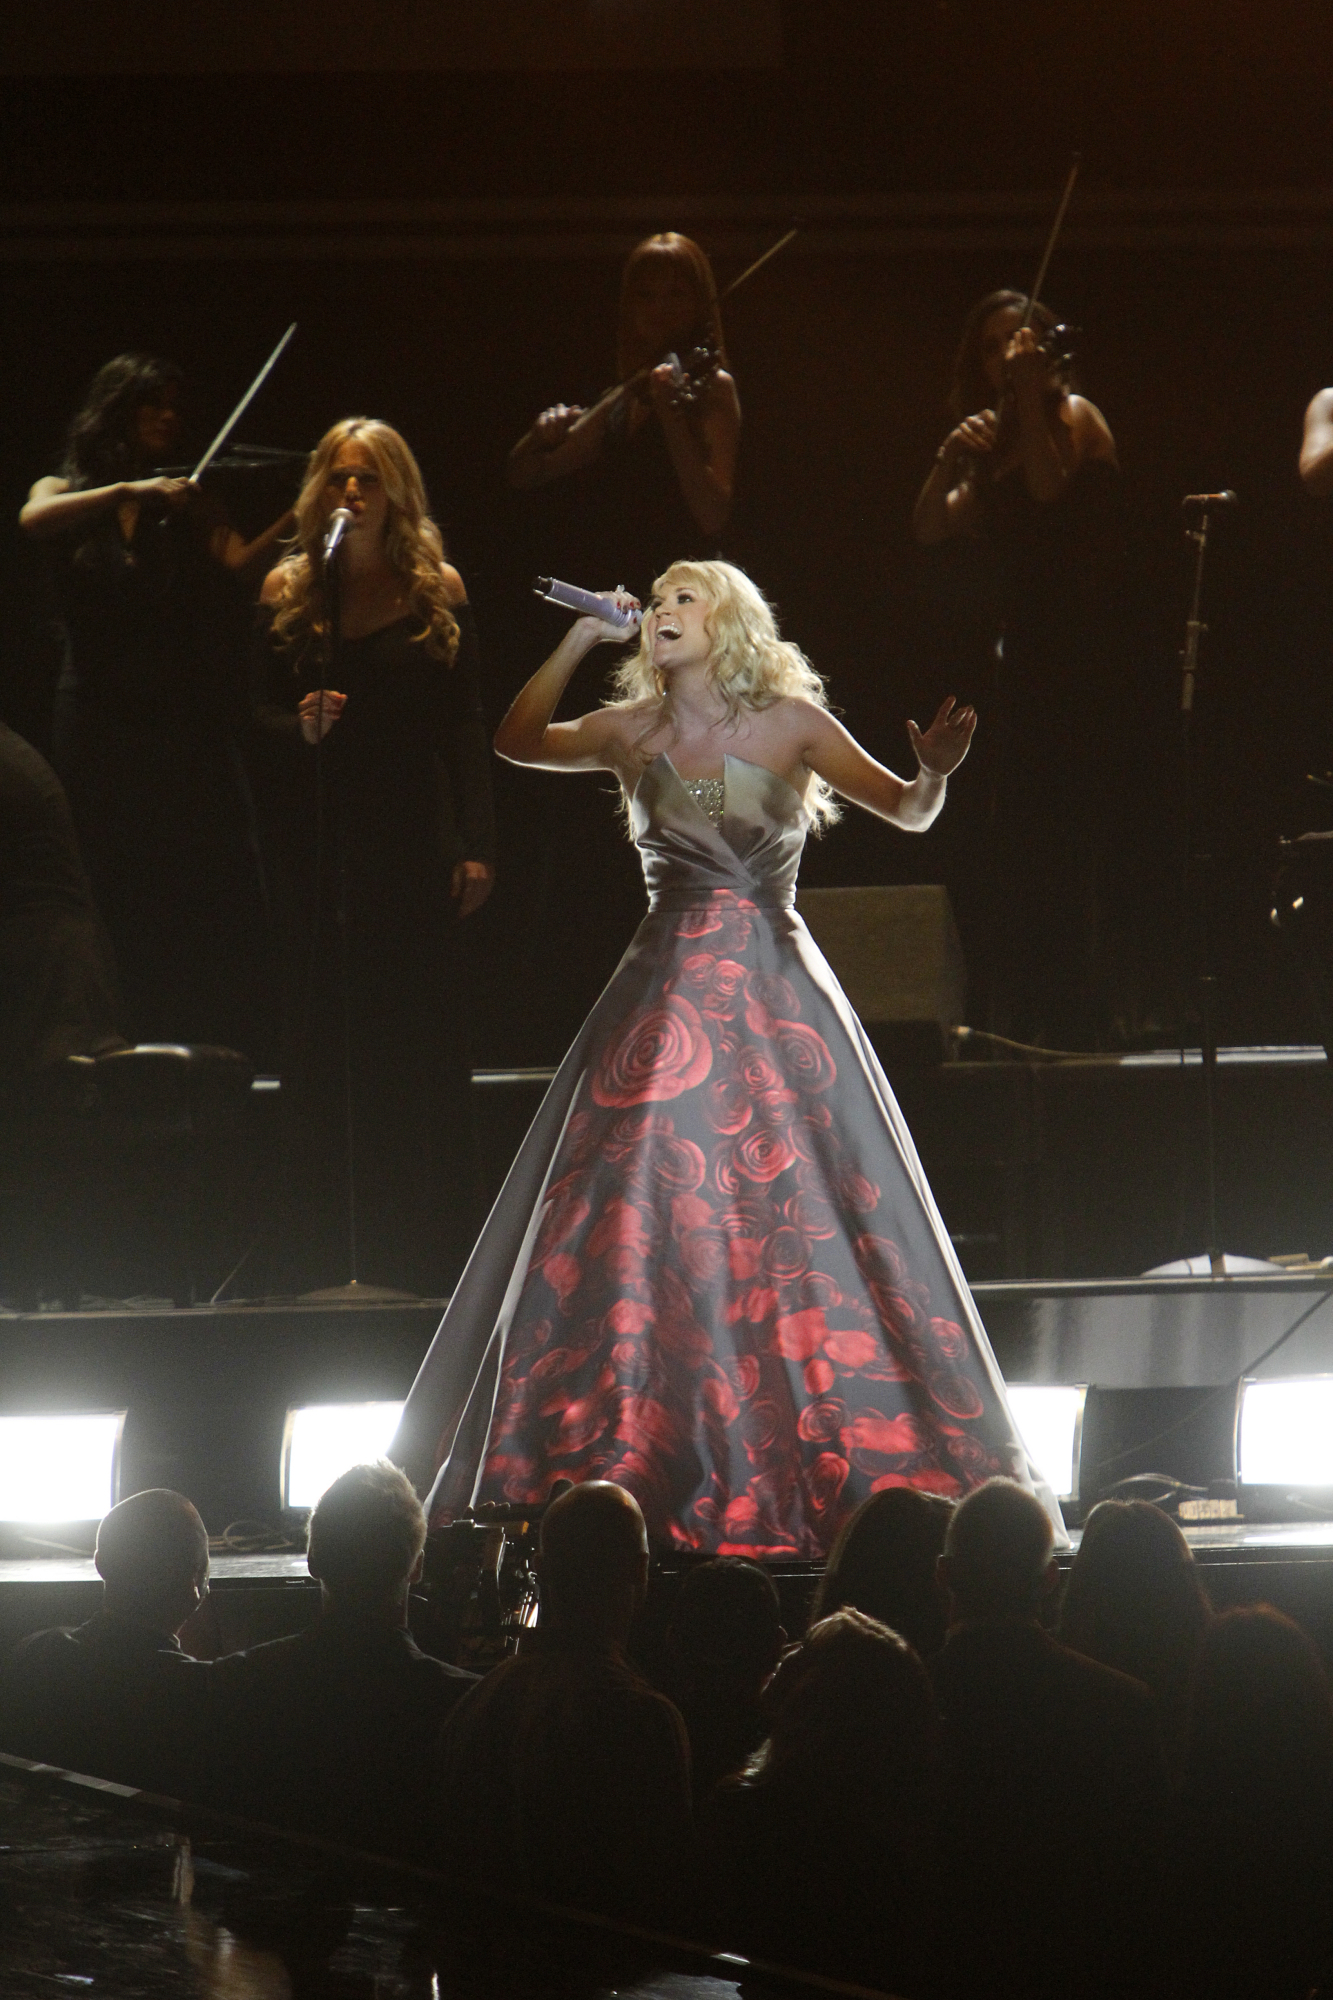 Carrie Underwood Scheduled to Perform on the 48th Annual ACM Awards